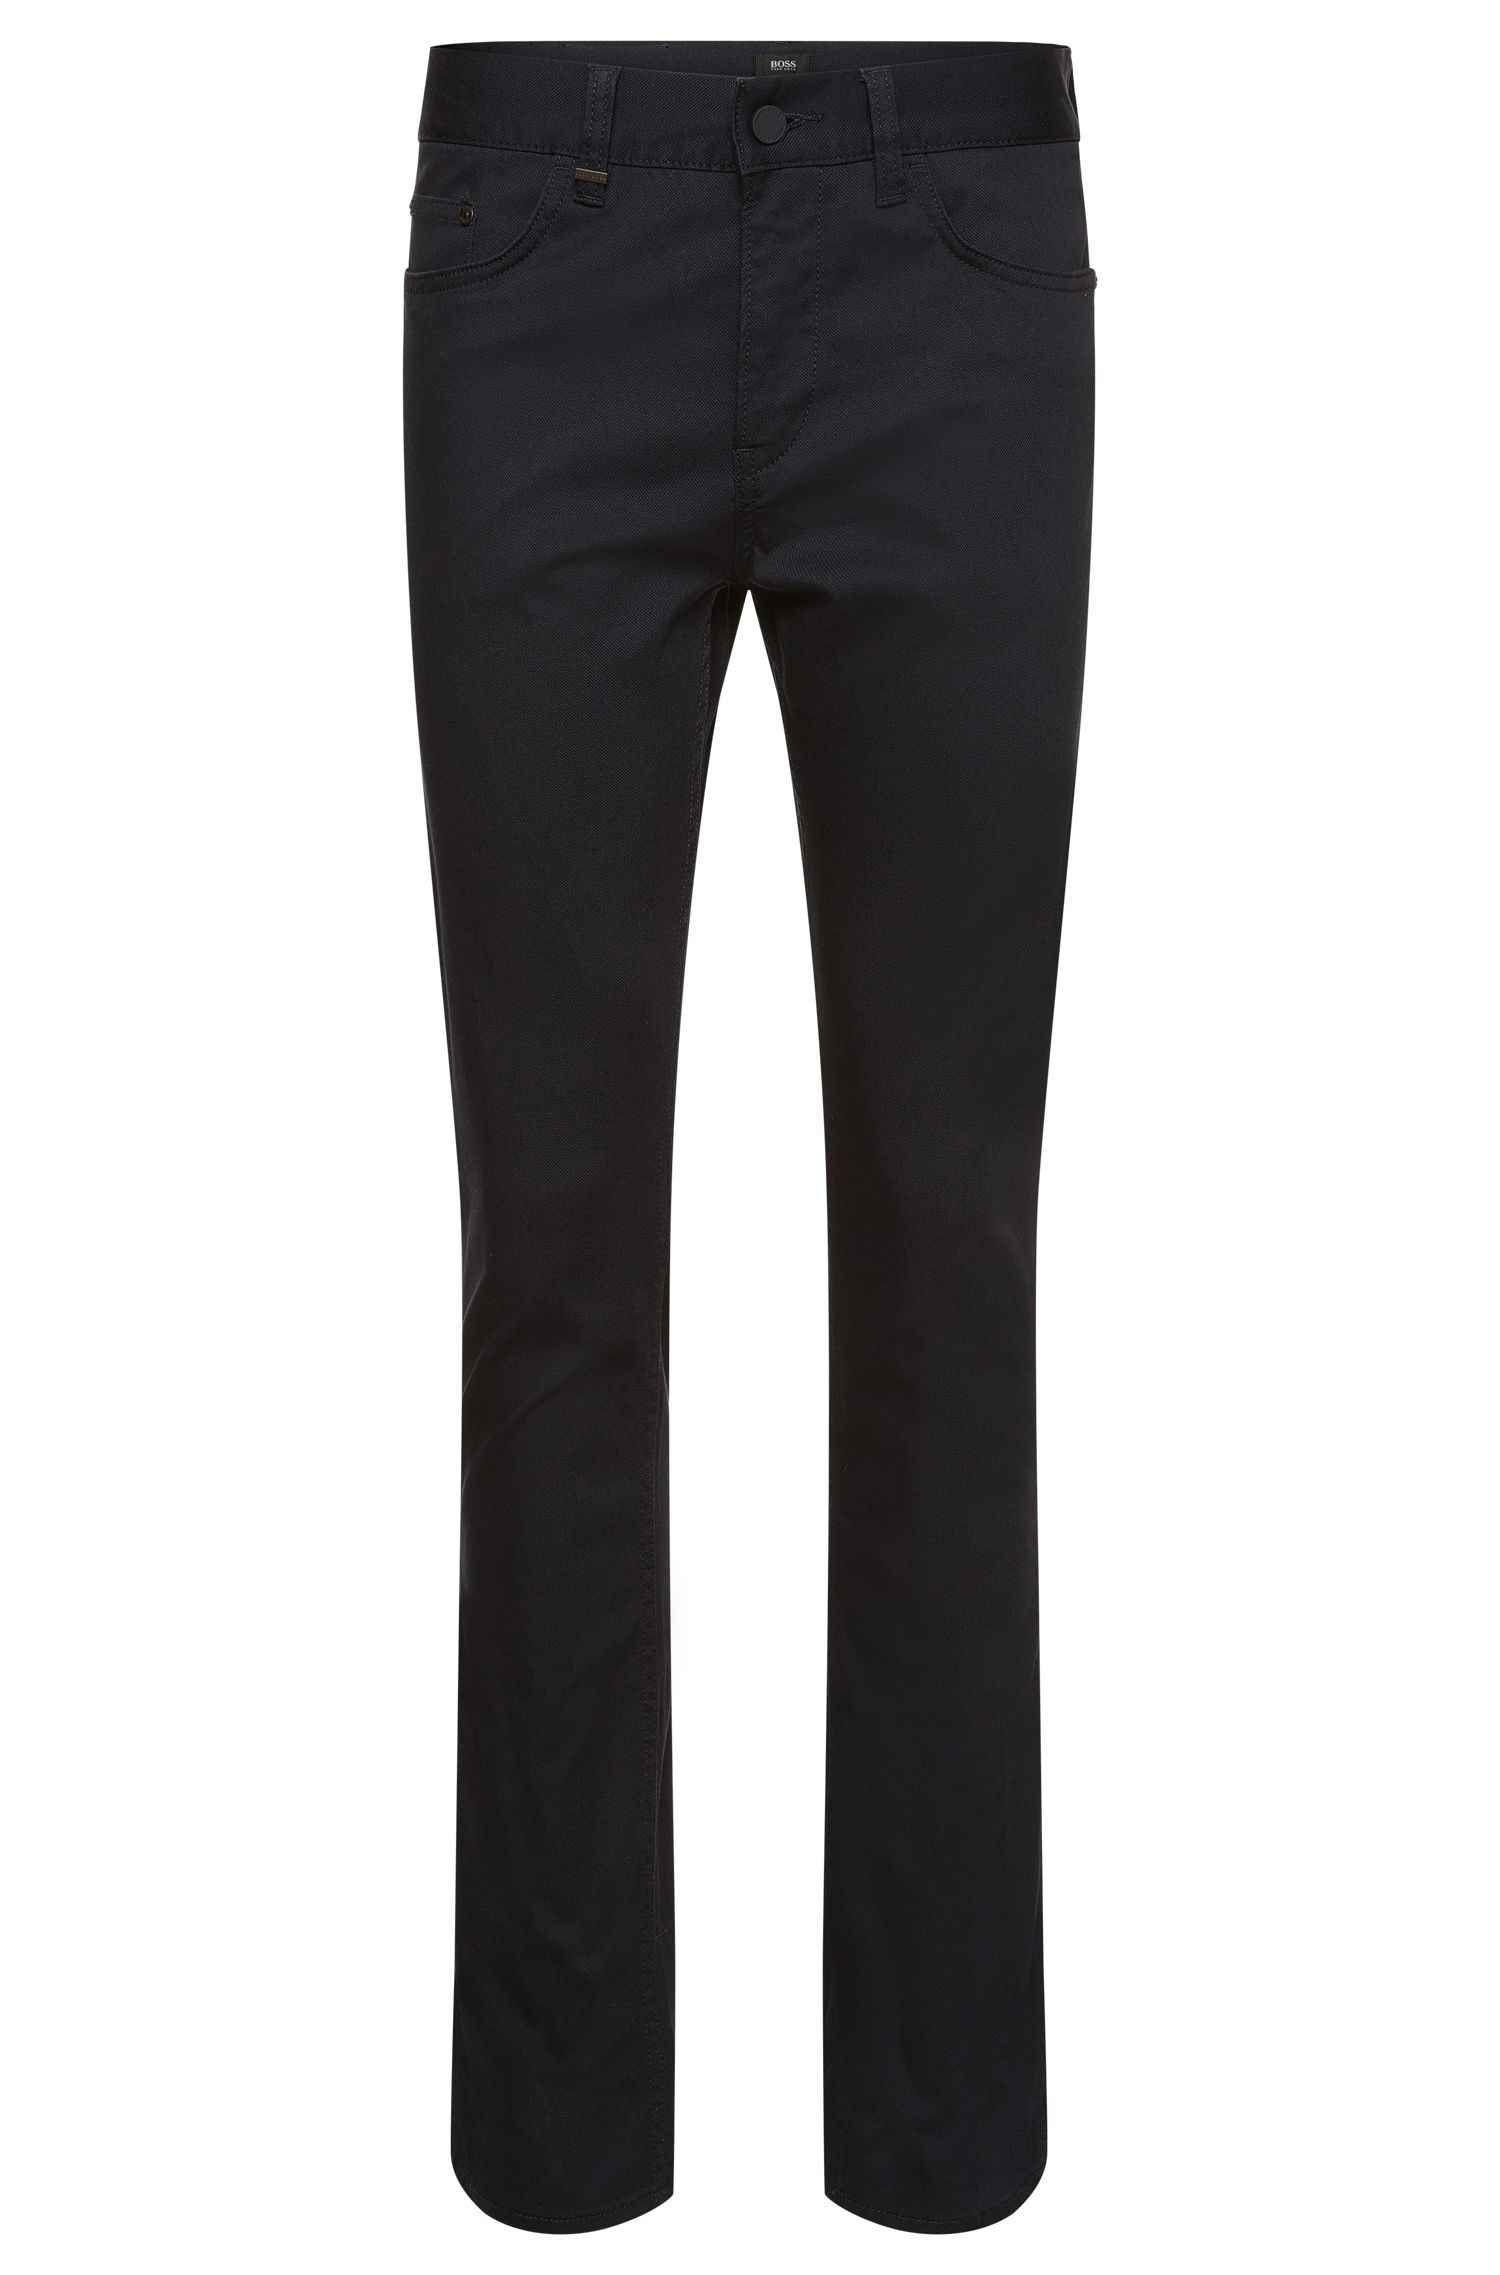 'Delaware' | Slim Fit, 11 oz Stretch Cotton Trouser